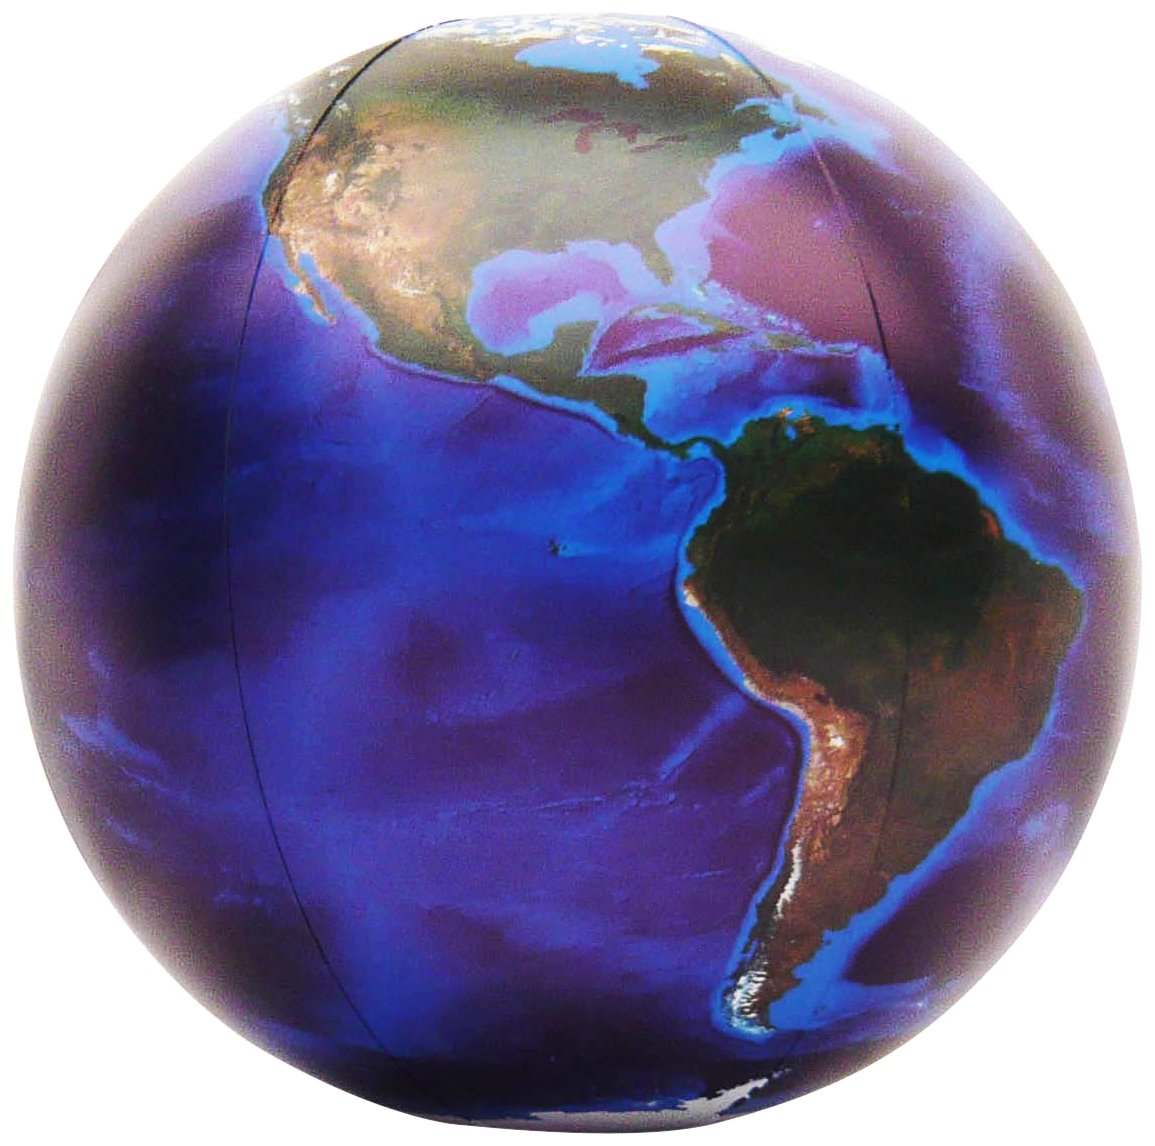 Jet Creations Inflatable Blue Marble World Globe, 36 inch by Jet Creations